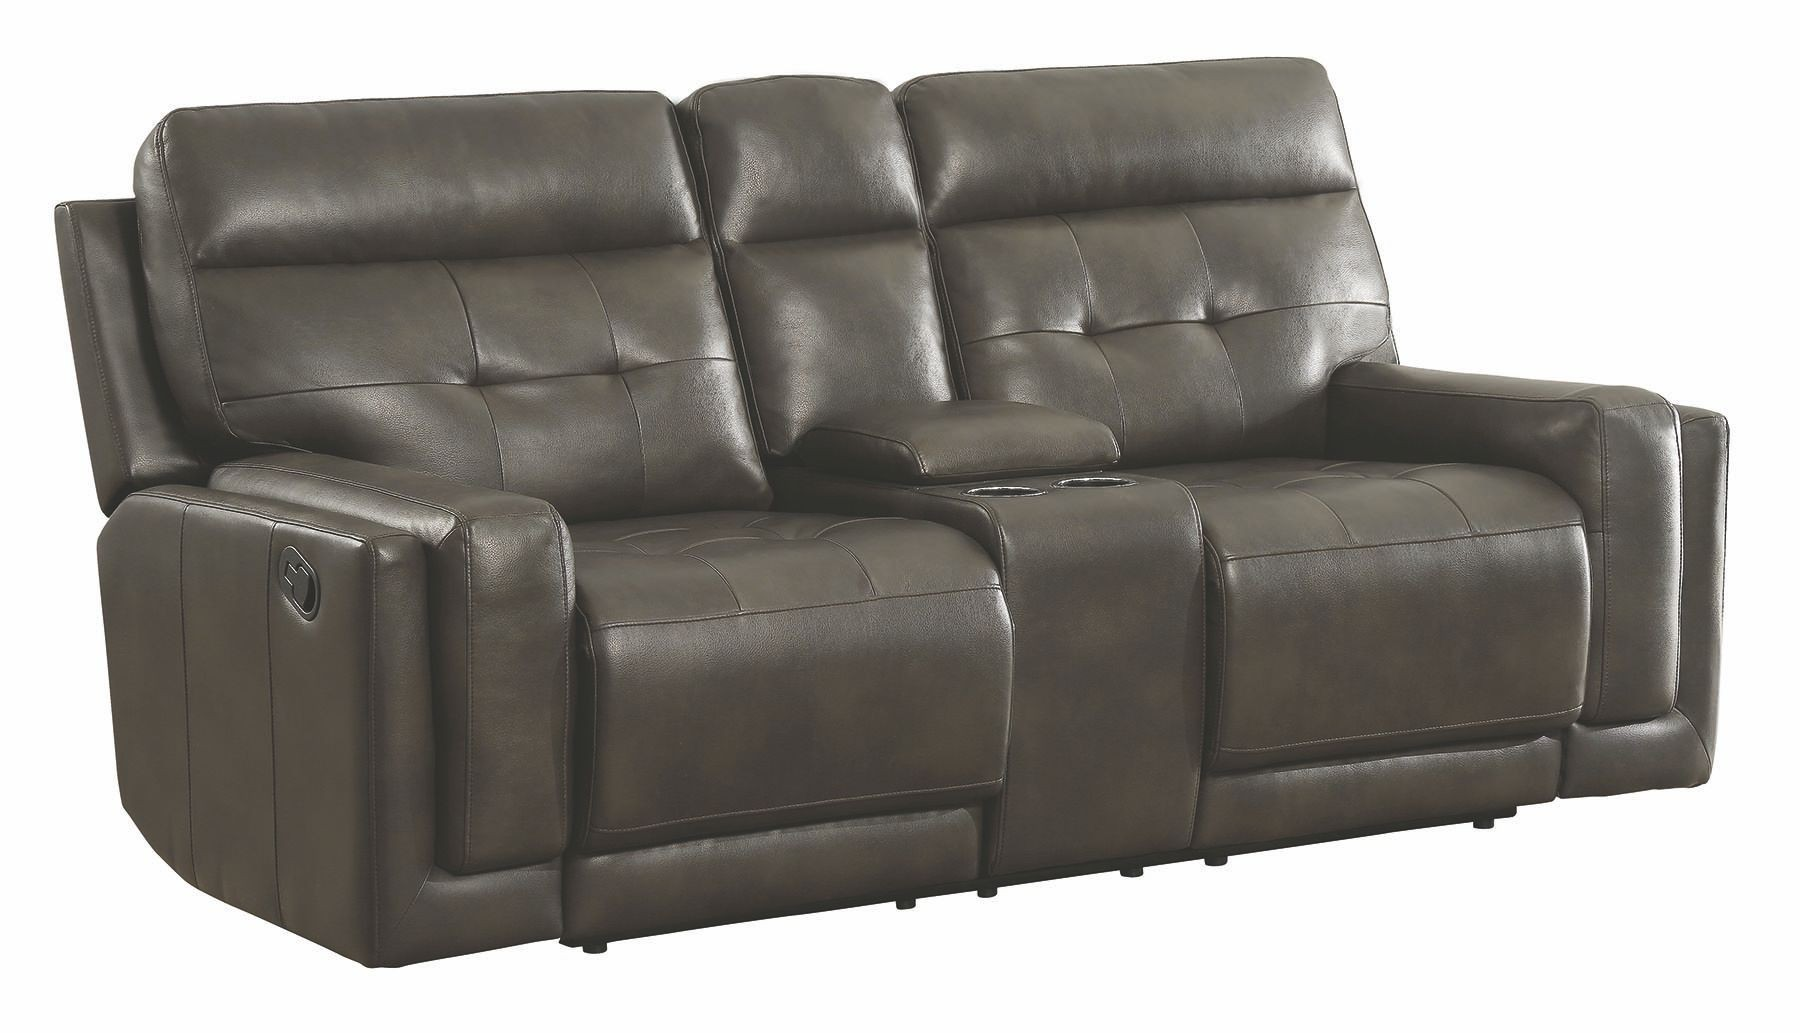 Trenton Motion Dark Grey Reclining Console Loveseat From